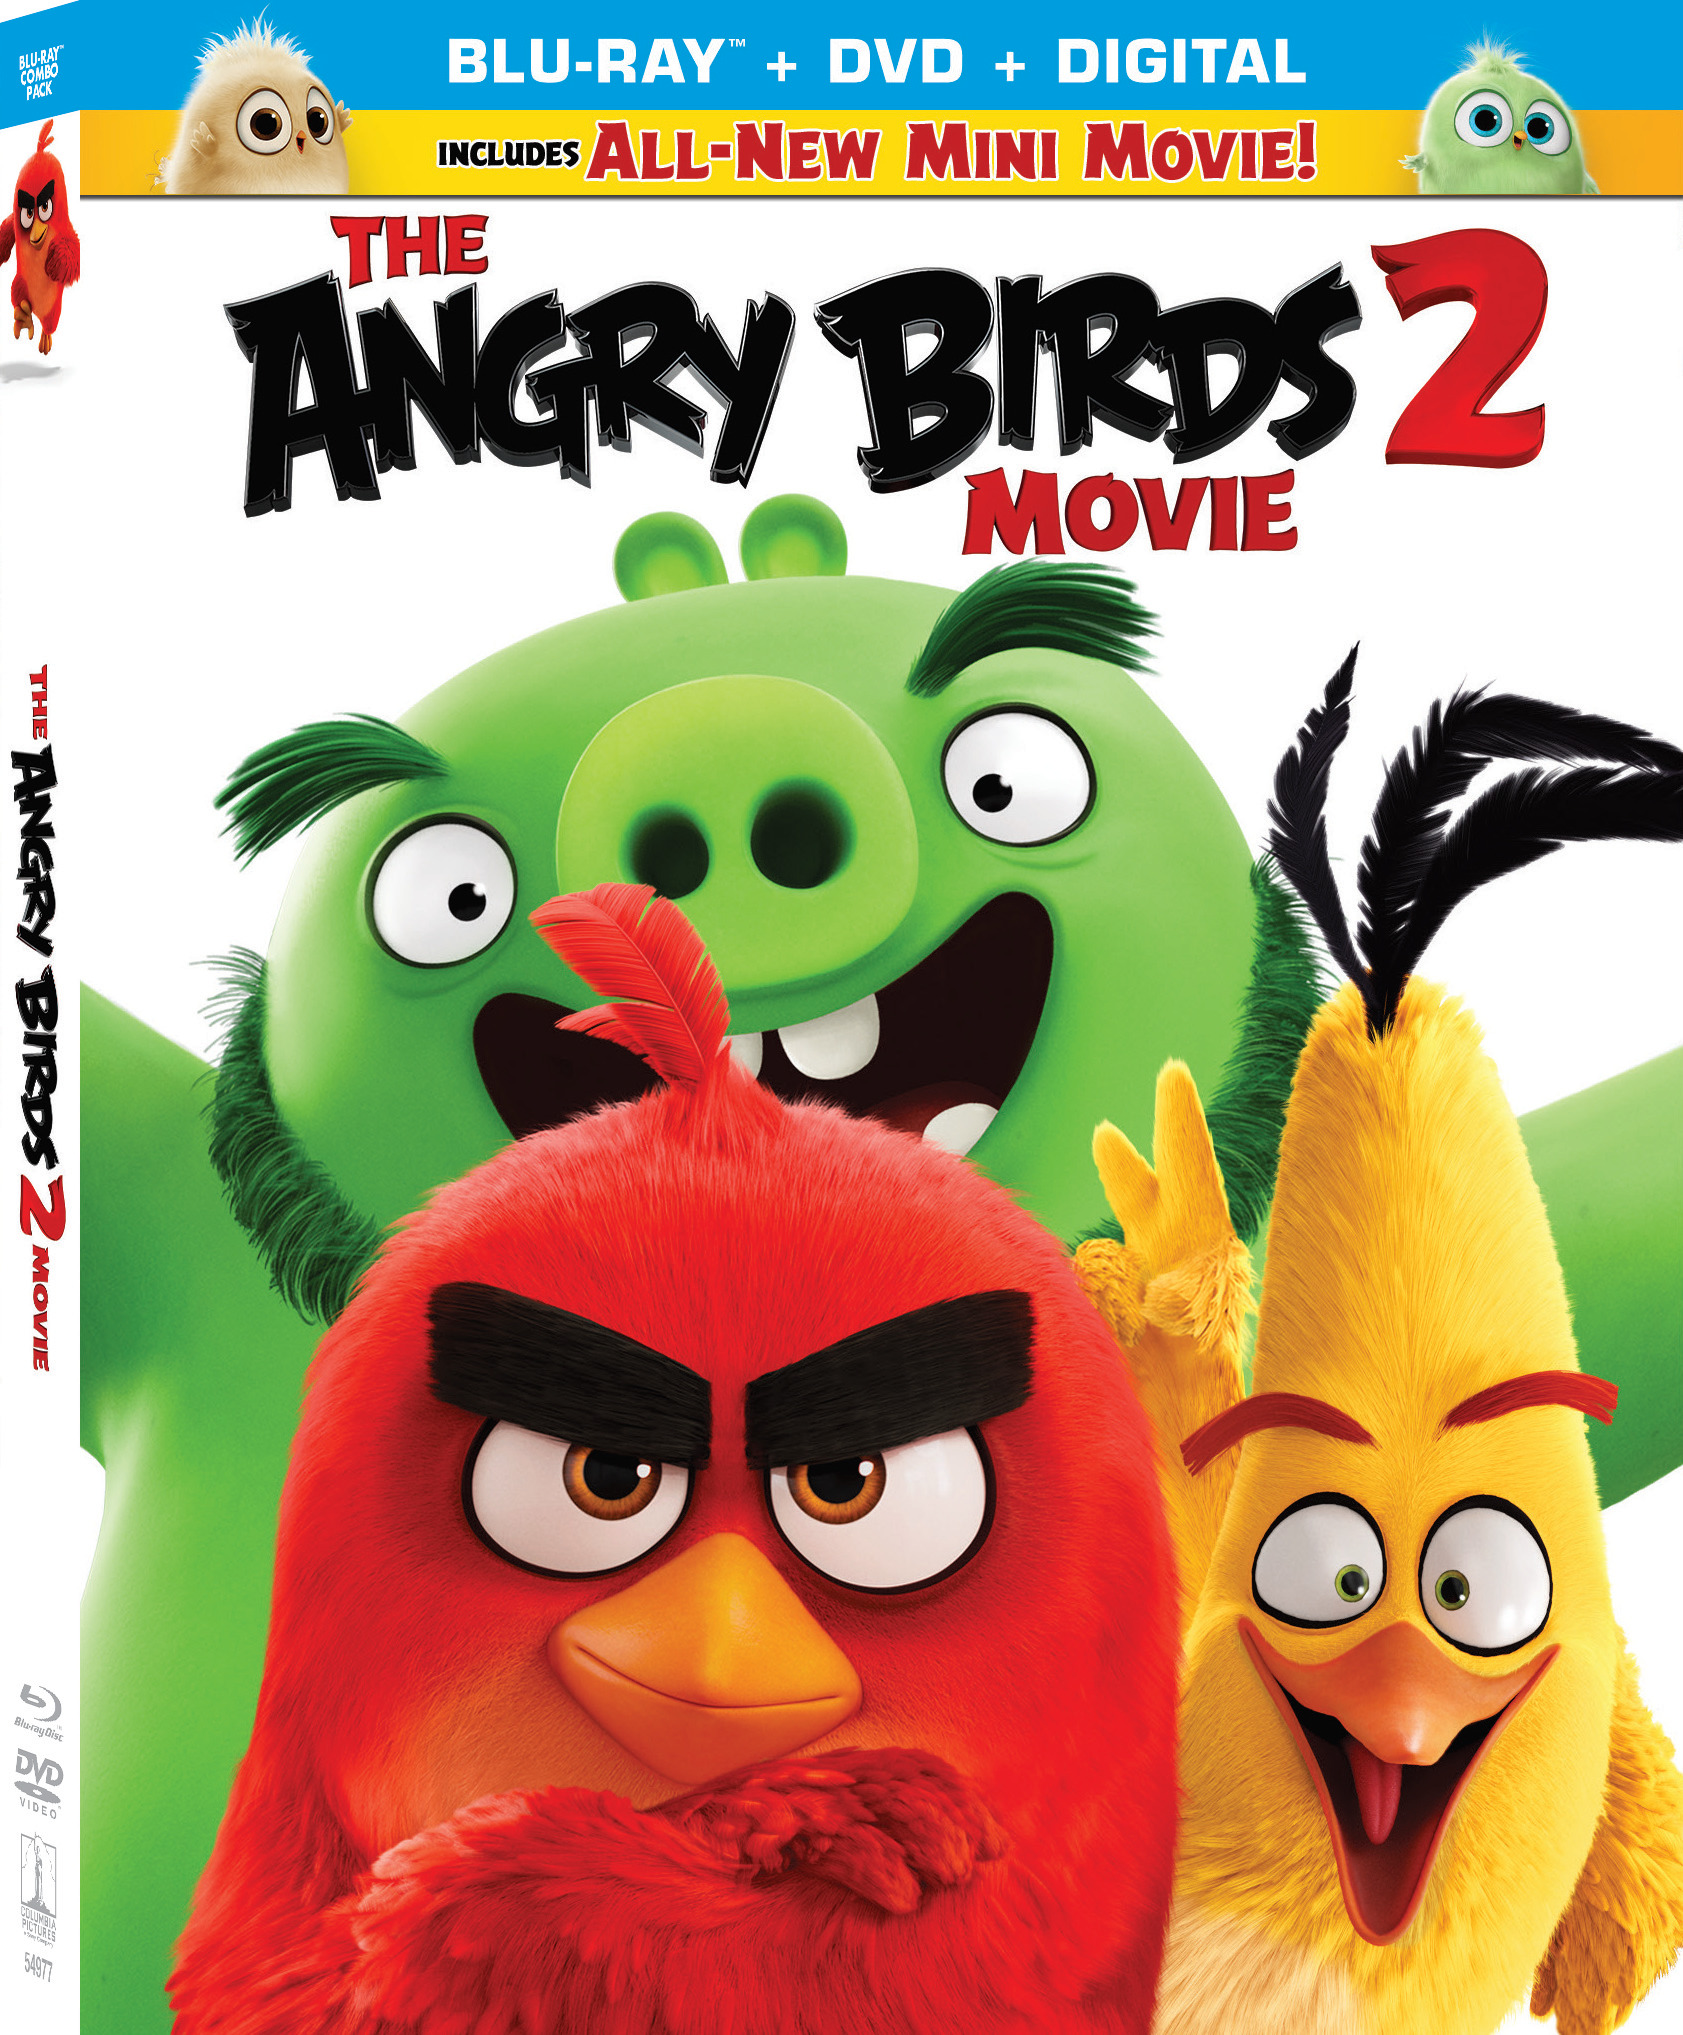 Enter to win a Blu-ray copy of The Angry Birds Movie 2 Giveaway Image